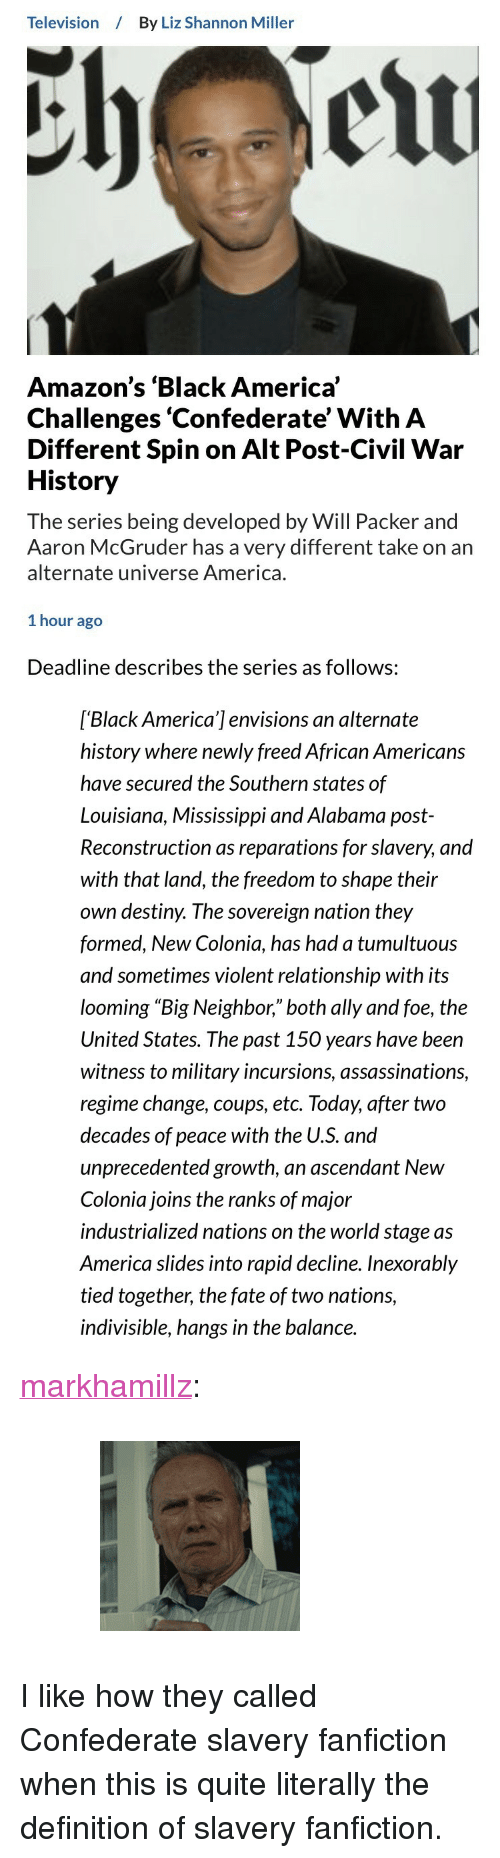 "America, Bailey Jay, and Destiny: Television By Liz Shannon Miller  Amazon's 'Black America'  Challenges 'Confederate' With A  Different Spin on Alt Post-Civil War  History  The series being developed by Will Packer and  Aaron McGruder has a very different take on an  alternate universe America.  1 hour ago   Deadline describes the series as follows:  ['Black America'] envisions an alternate  history where newly freed African Americans  have secured the Southern states of  Louisiana, Mississippi and Alabama post-  Reconstruction as reparations for slavery, and  with that land, the freedom to shape their  own destiny. The sovereign nation they  formed, New Colonia, has had a tumultuous  and sometimes violent relationship with its  looming ""Big Neighbor,"" both ally and foe, the  United States. The past 150 years have been  witness to military incursions, assassinations,  regime change, coups, etc. Today, after two  decades of peace with the U.S. and  unprecedented growth, an ascendant New  Colonia joins the ranks of major  industrialized nations on the world stage as  America slides into rapid decline. Inexorably  tied together, the fate of two nations,  indivisible, hangs in the balance. <p><a href=""http://markhamillz.tumblr.com/post/163685065551"" class=""tumblr_blog"">markhamillz</a>:</p>  <blockquote><figure class=""tmblr-full"" data-orig-width=""200"" data-orig-height=""190"" data-tumblr-attribution=""frustratedteacher-blog:sD03PePbGBiECp1eBSF7xA:ZiQv2tdhaywn"" data-orig-src=""https://78.media.tumblr.com/c069ae8a8e0d08c4dcc930e52d741dfc/tumblr_mhx7qwDb3N1s5w9a4o2_r1_250.gif""><img src=""https://78.media.tumblr.com/3fc5dd9014b7b9f8b21ba75ea177b6d8/tumblr_inline_ou0sw6bHaG1rqjiip_540.gif"" data-orig-width=""200"" data-orig-height=""190"" data-orig-src=""https://78.media.tumblr.com/c069ae8a8e0d08c4dcc930e52d741dfc/tumblr_mhx7qwDb3N1s5w9a4o2_r1_250.gif""/></figure></blockquote>  <p>I like how they called Confederate slavery fanfiction when this is quite literally the definition of slavery fanfiction.</p>"